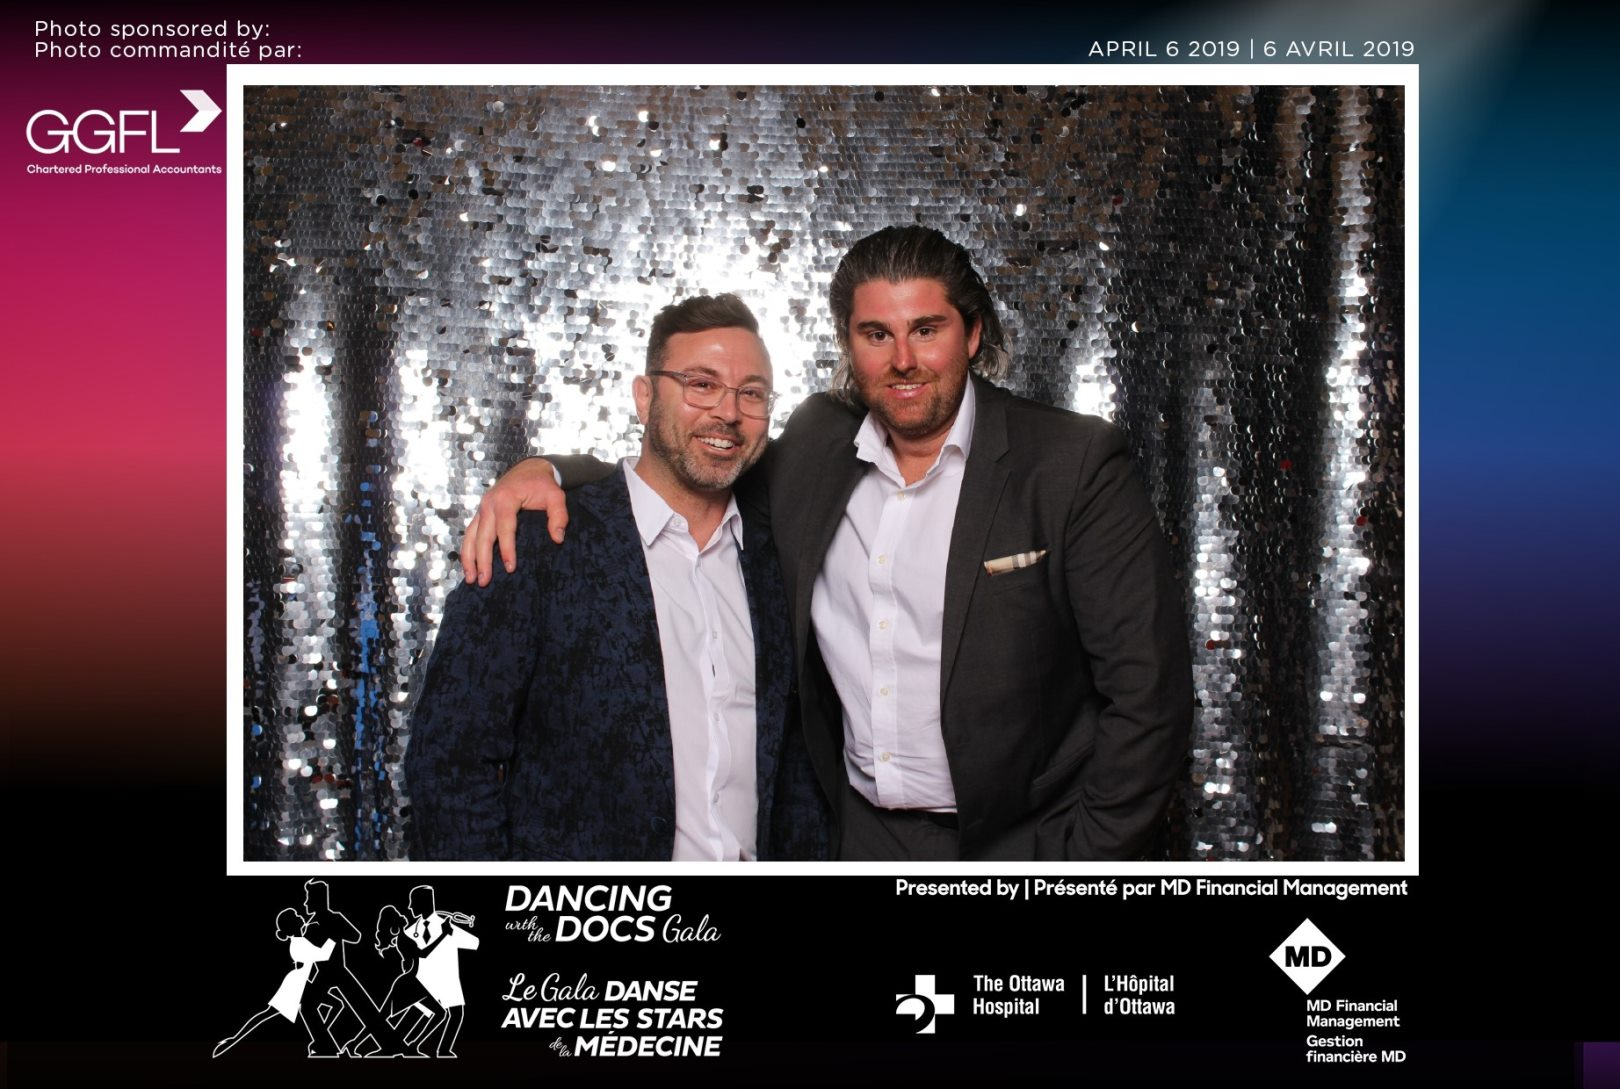 April 6, 2019  Dancing with the Docs Gala  The Grant Team showed their support for friend, Dr. Natasha K., as she danced to fundraise in support of patient care and research at The Ottawa Hospital.  This year, the Gala raised a whopping $455,000.  We are proud to say, Dr. Arleigh McCurdy and, our friend, Dr. Natasha K. were crowned this year's Dancing with the Docs winners!